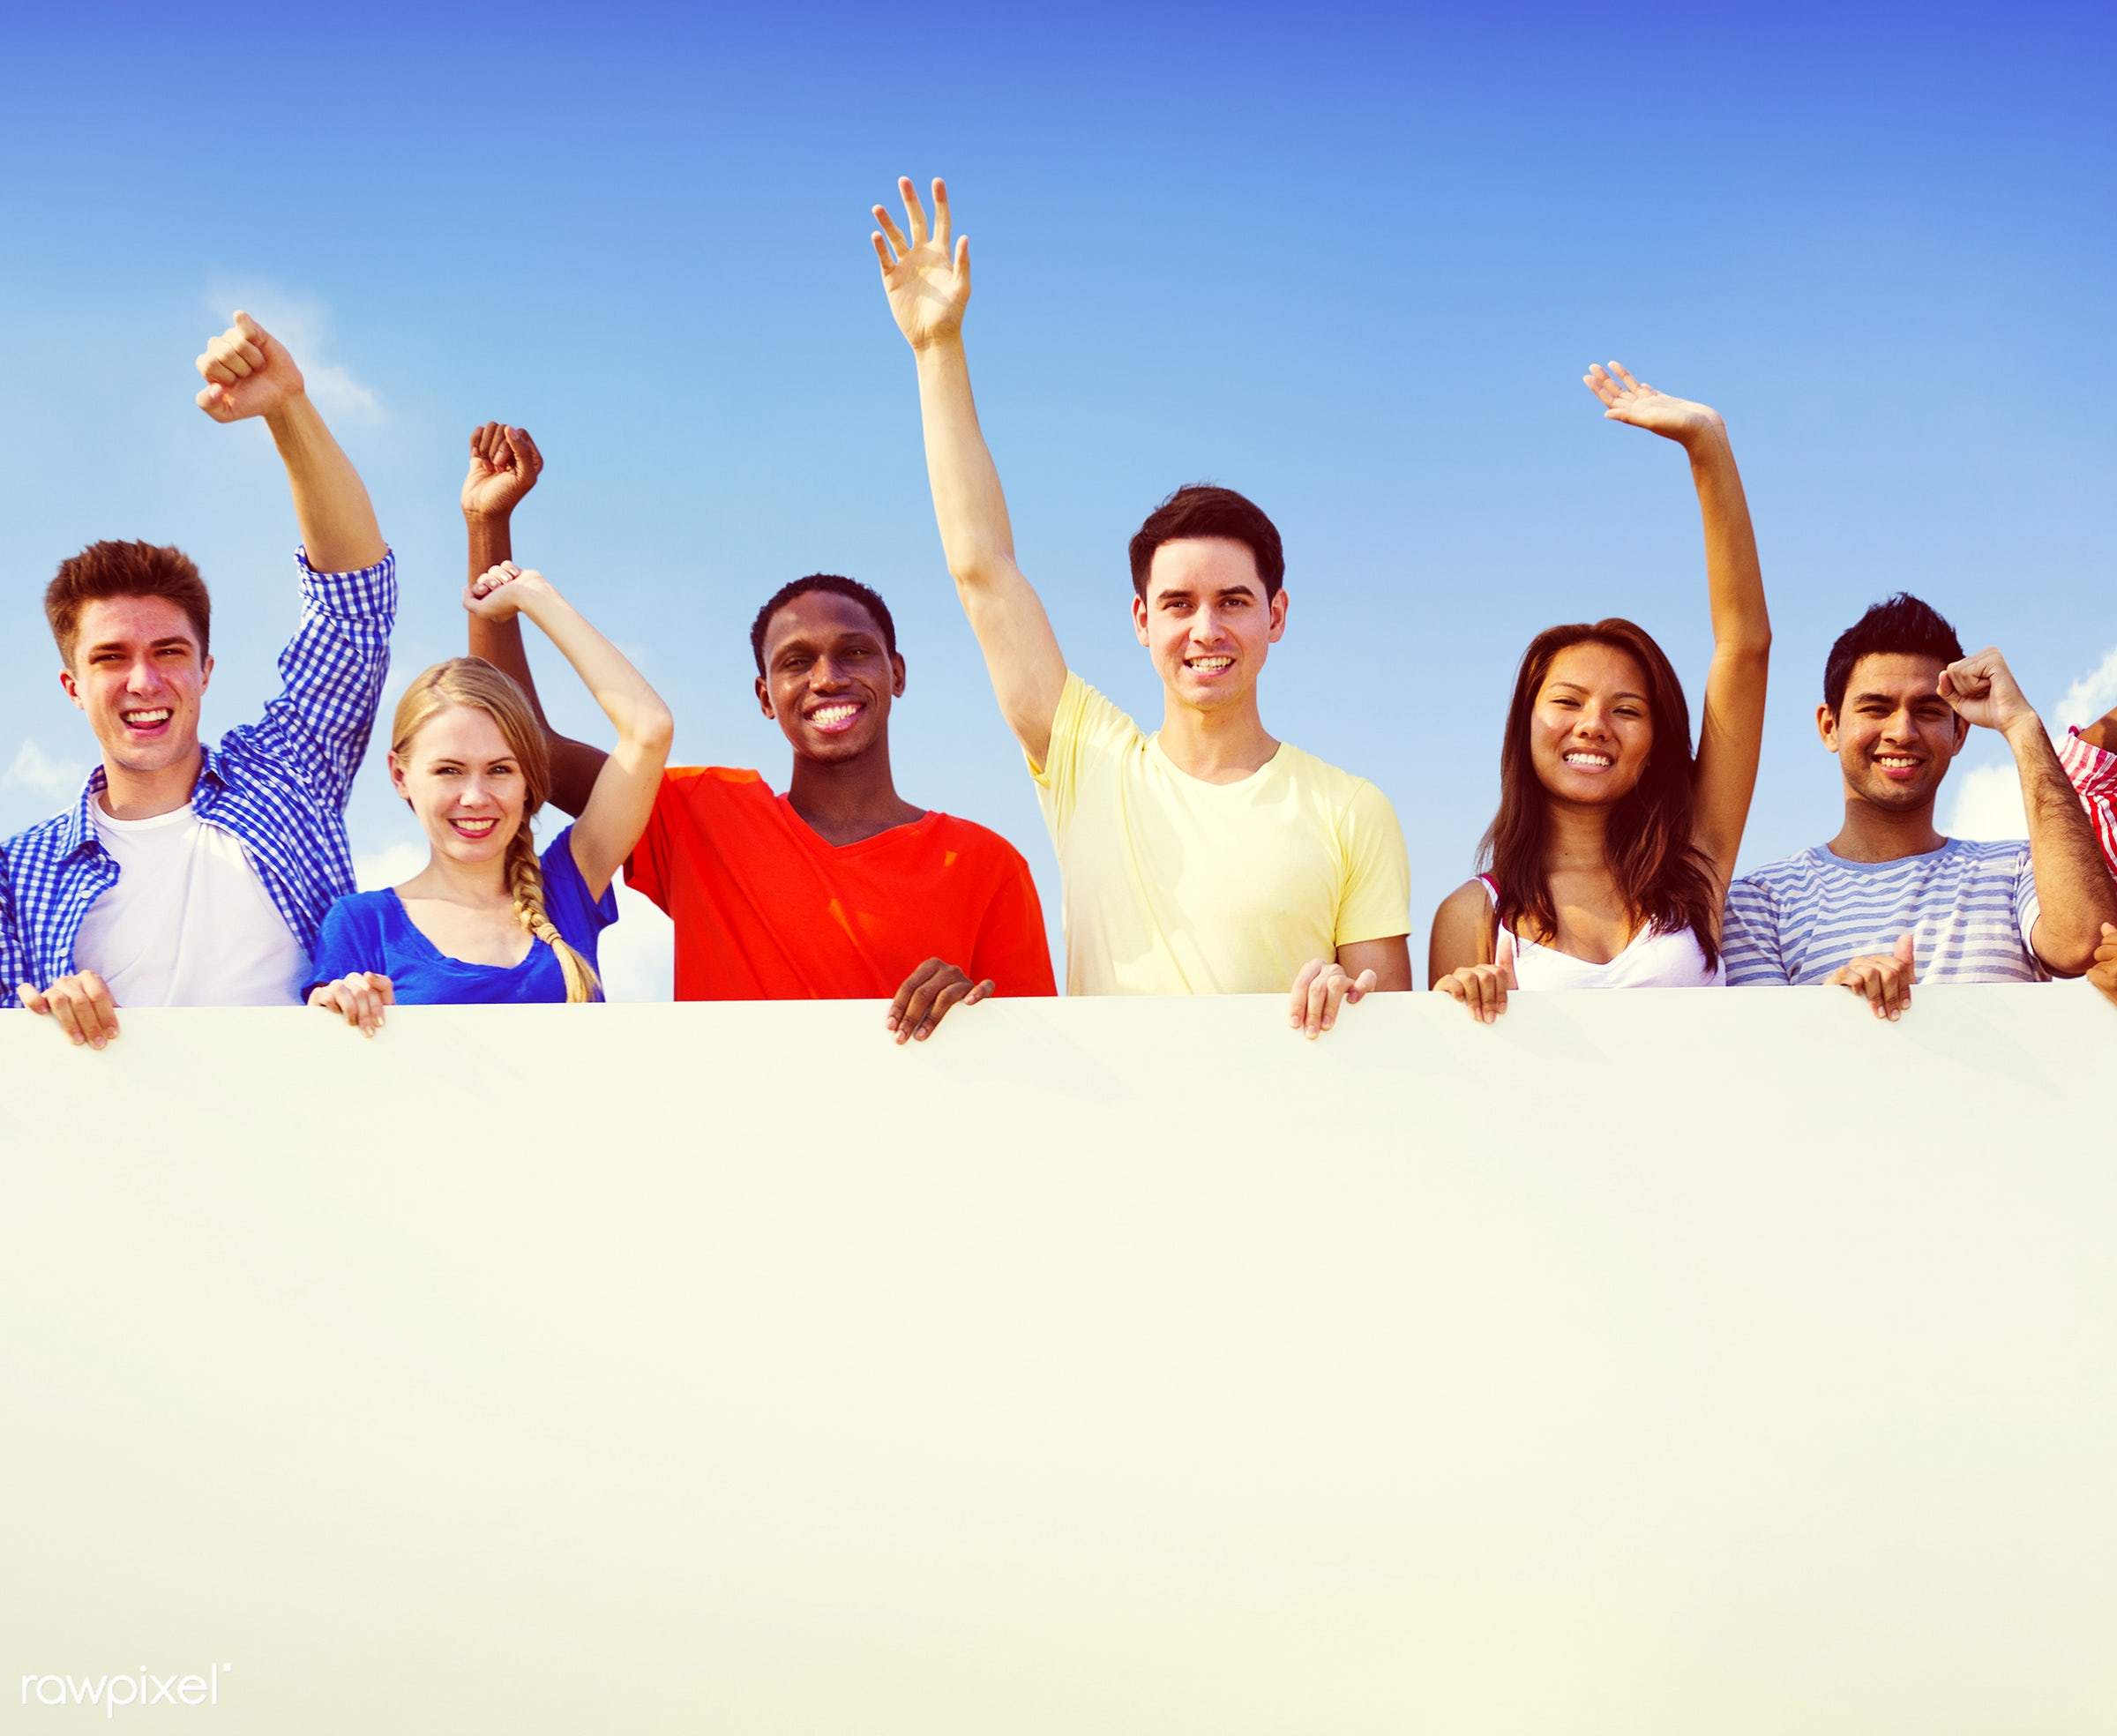 african descent, arms raised, asian ethnicity, banner, blank, blue sky, casual, caucasian, celebration, cheerful, colorful,...